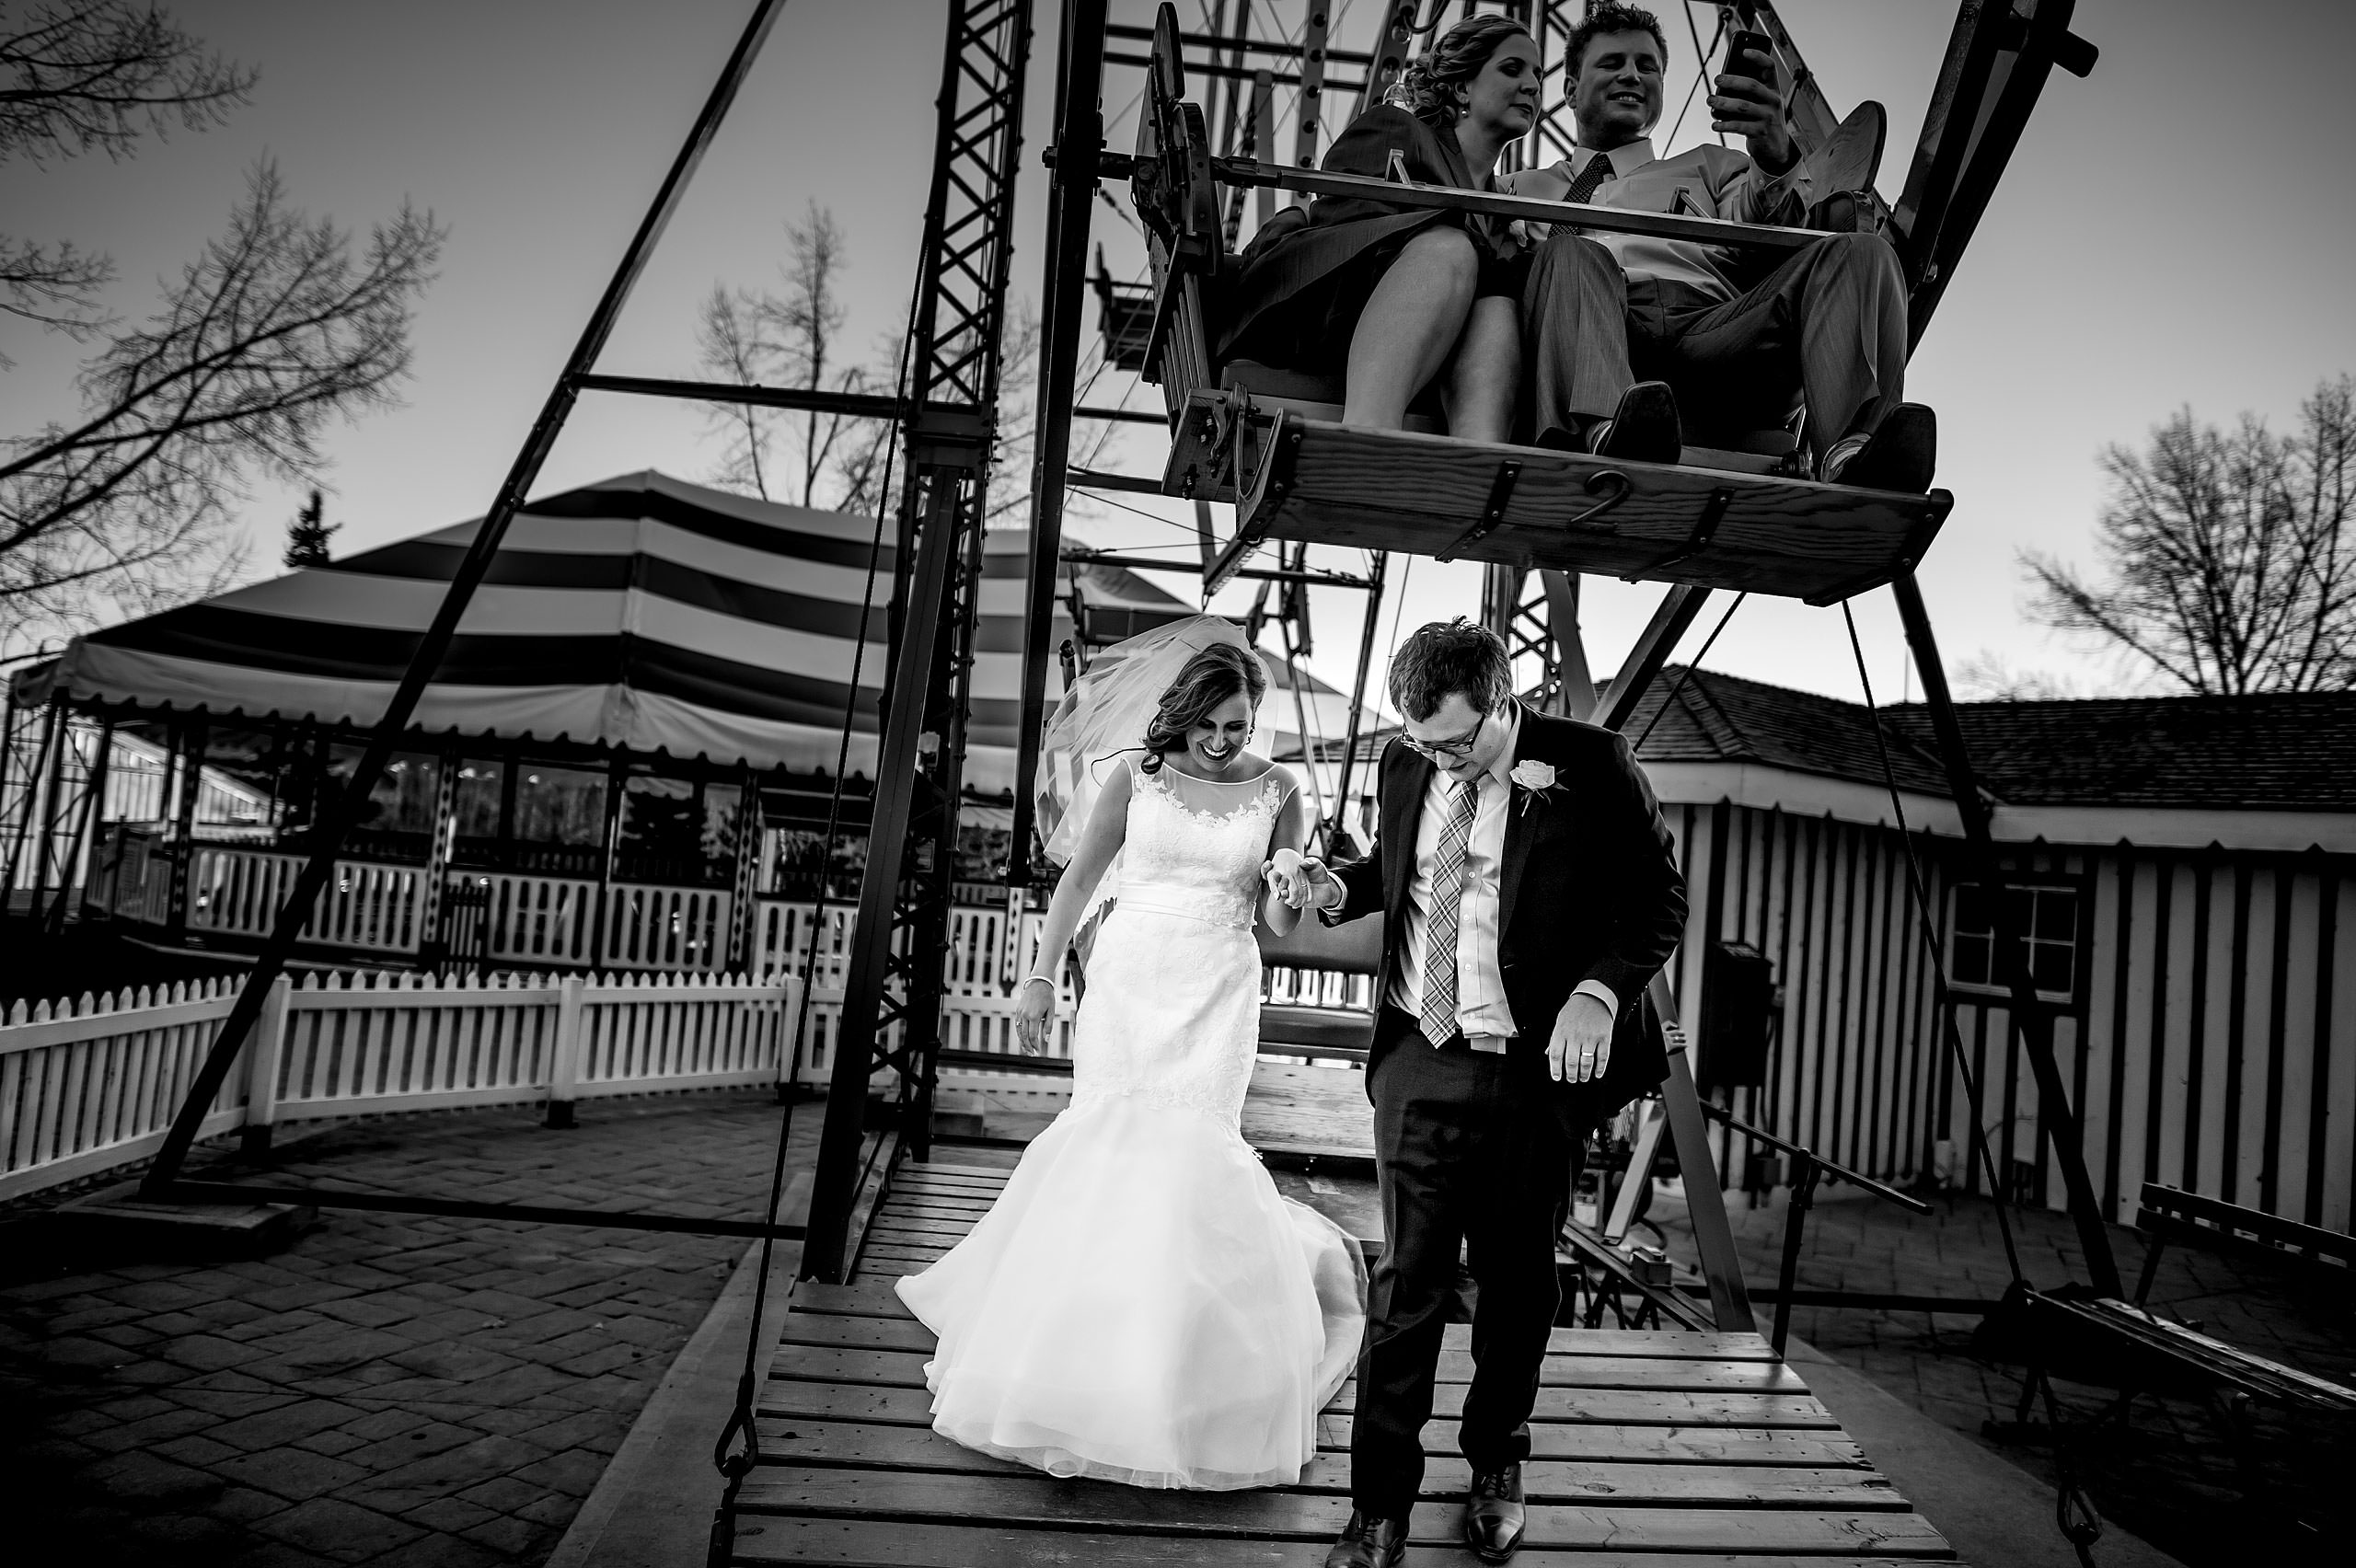 a bride and groom walking away from a Ferris wheel by Calgary Jewish Wedding Photographer Sean LeBlanc